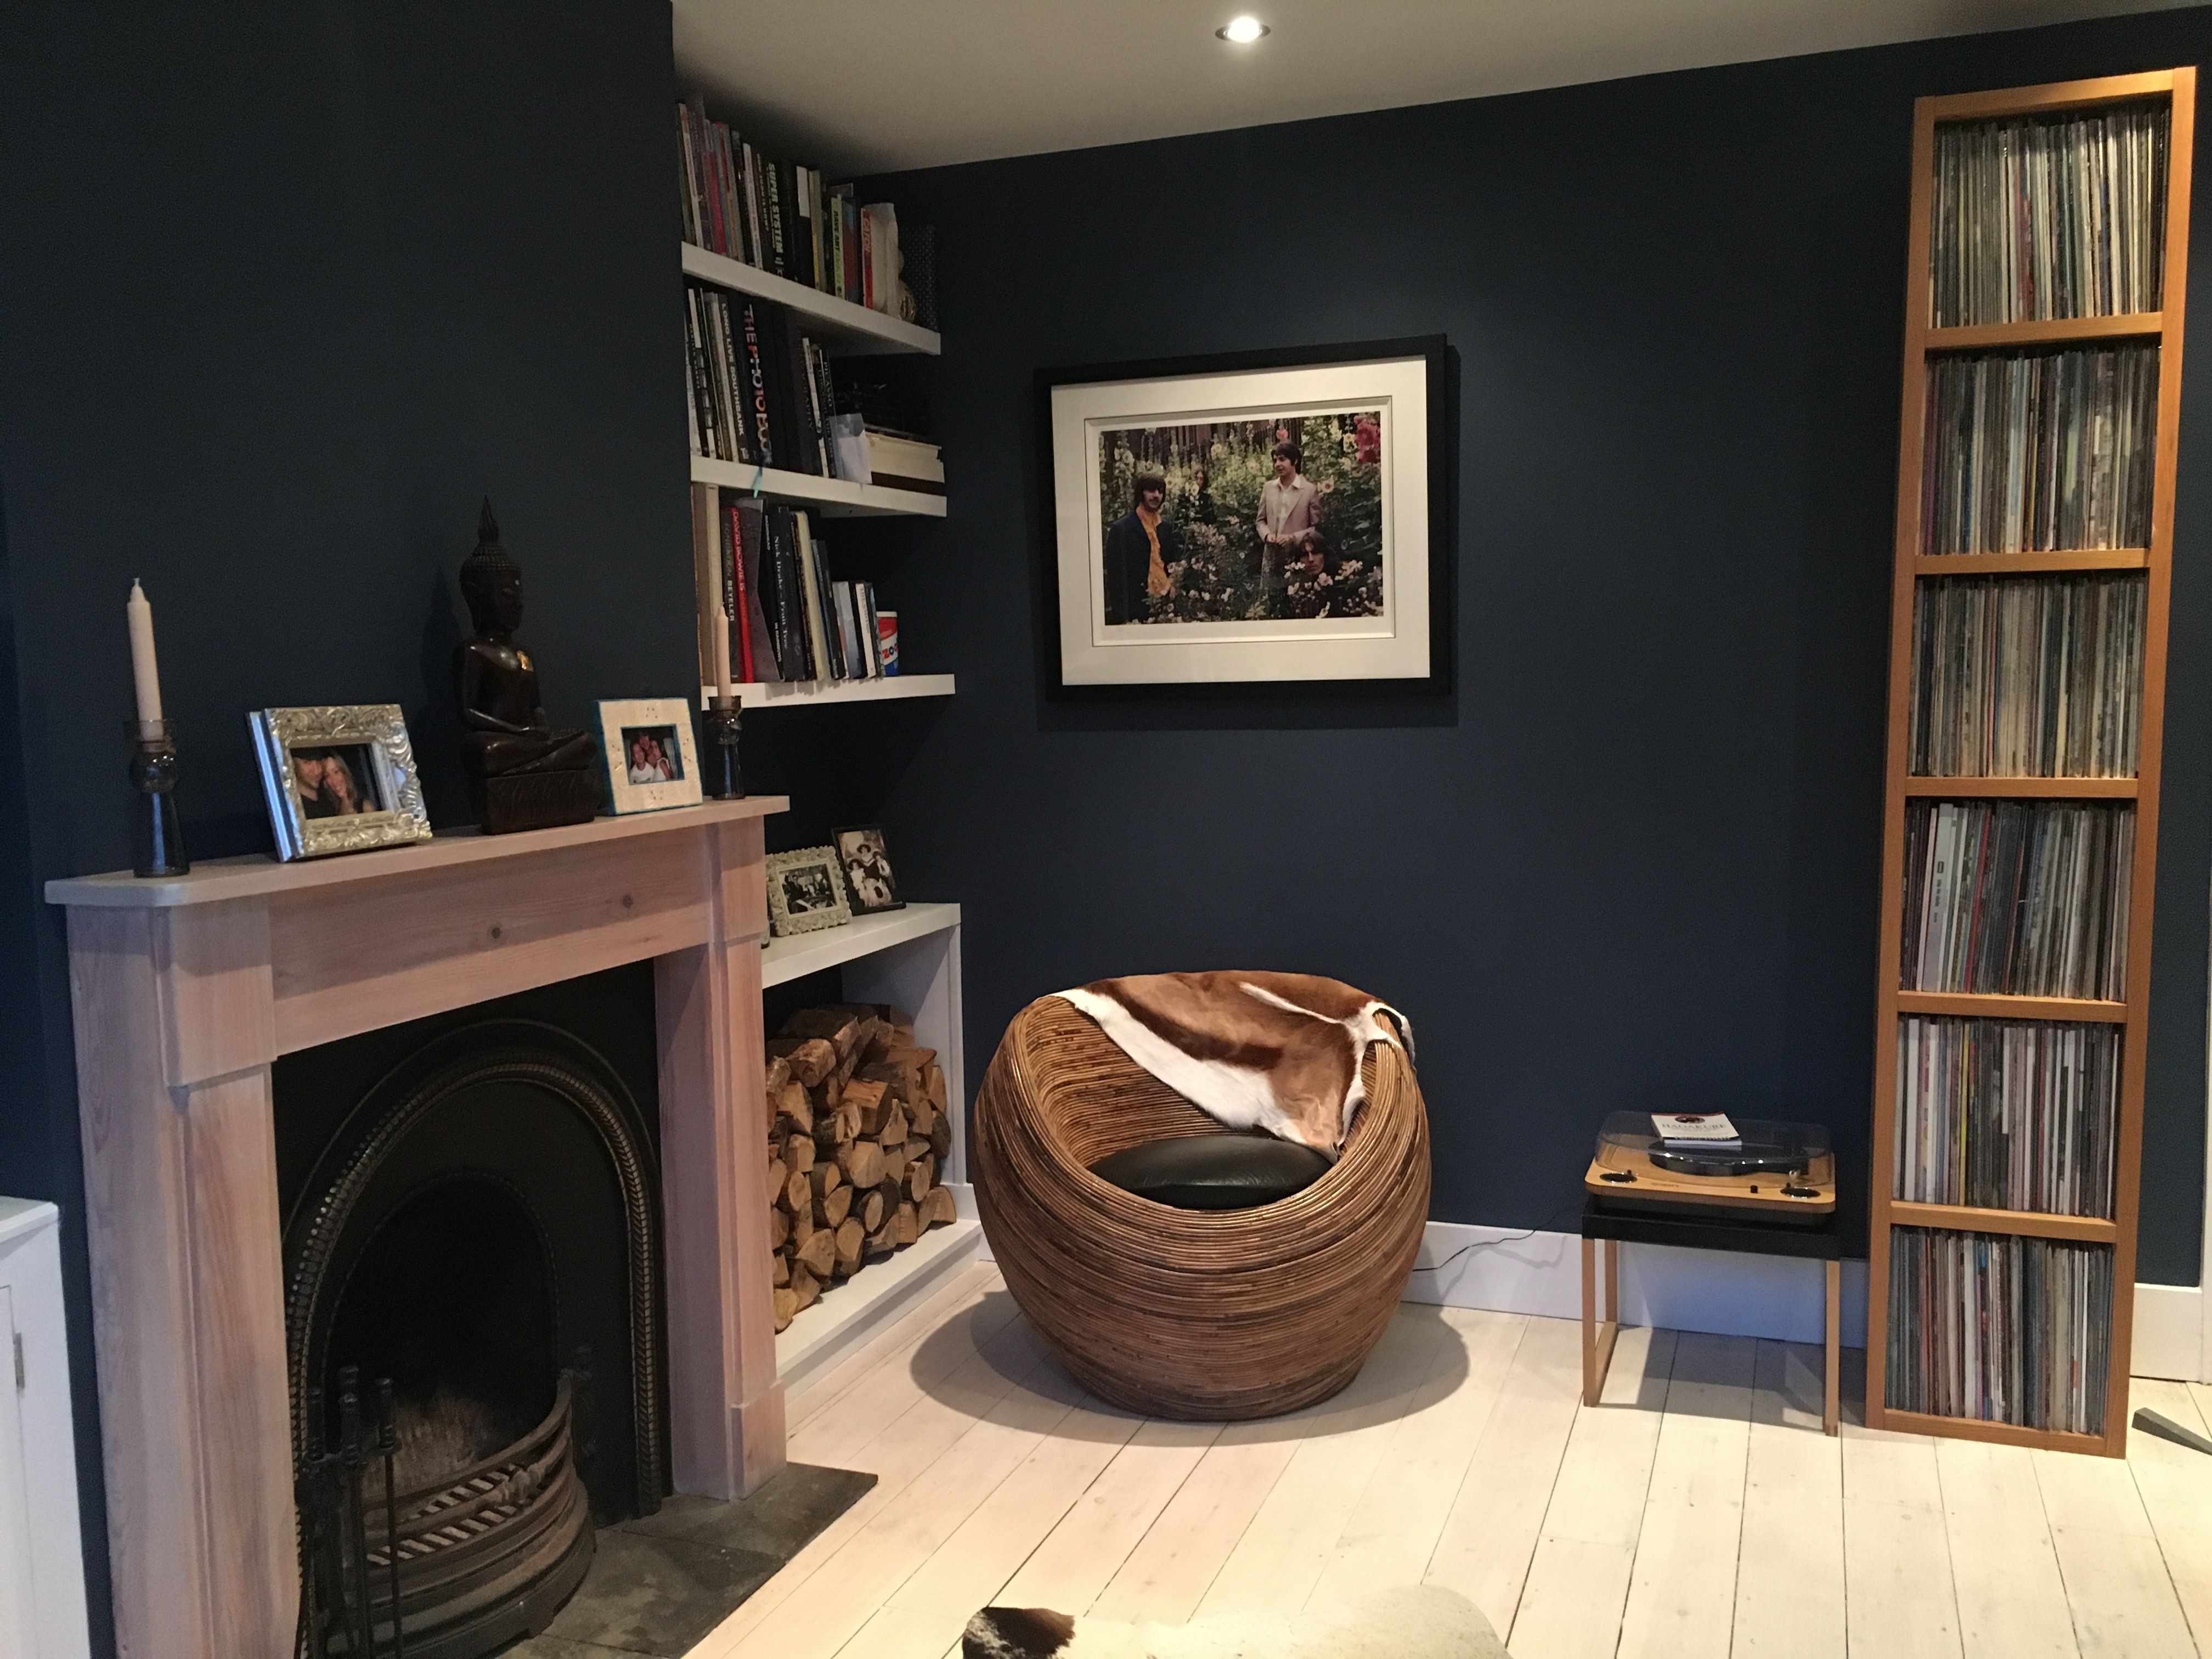 Farrow And Ball Stiffkey Blue Gives This North Facing Room A Cosy Feel Cosy Living Room Blue Living Room 1930s Living Room